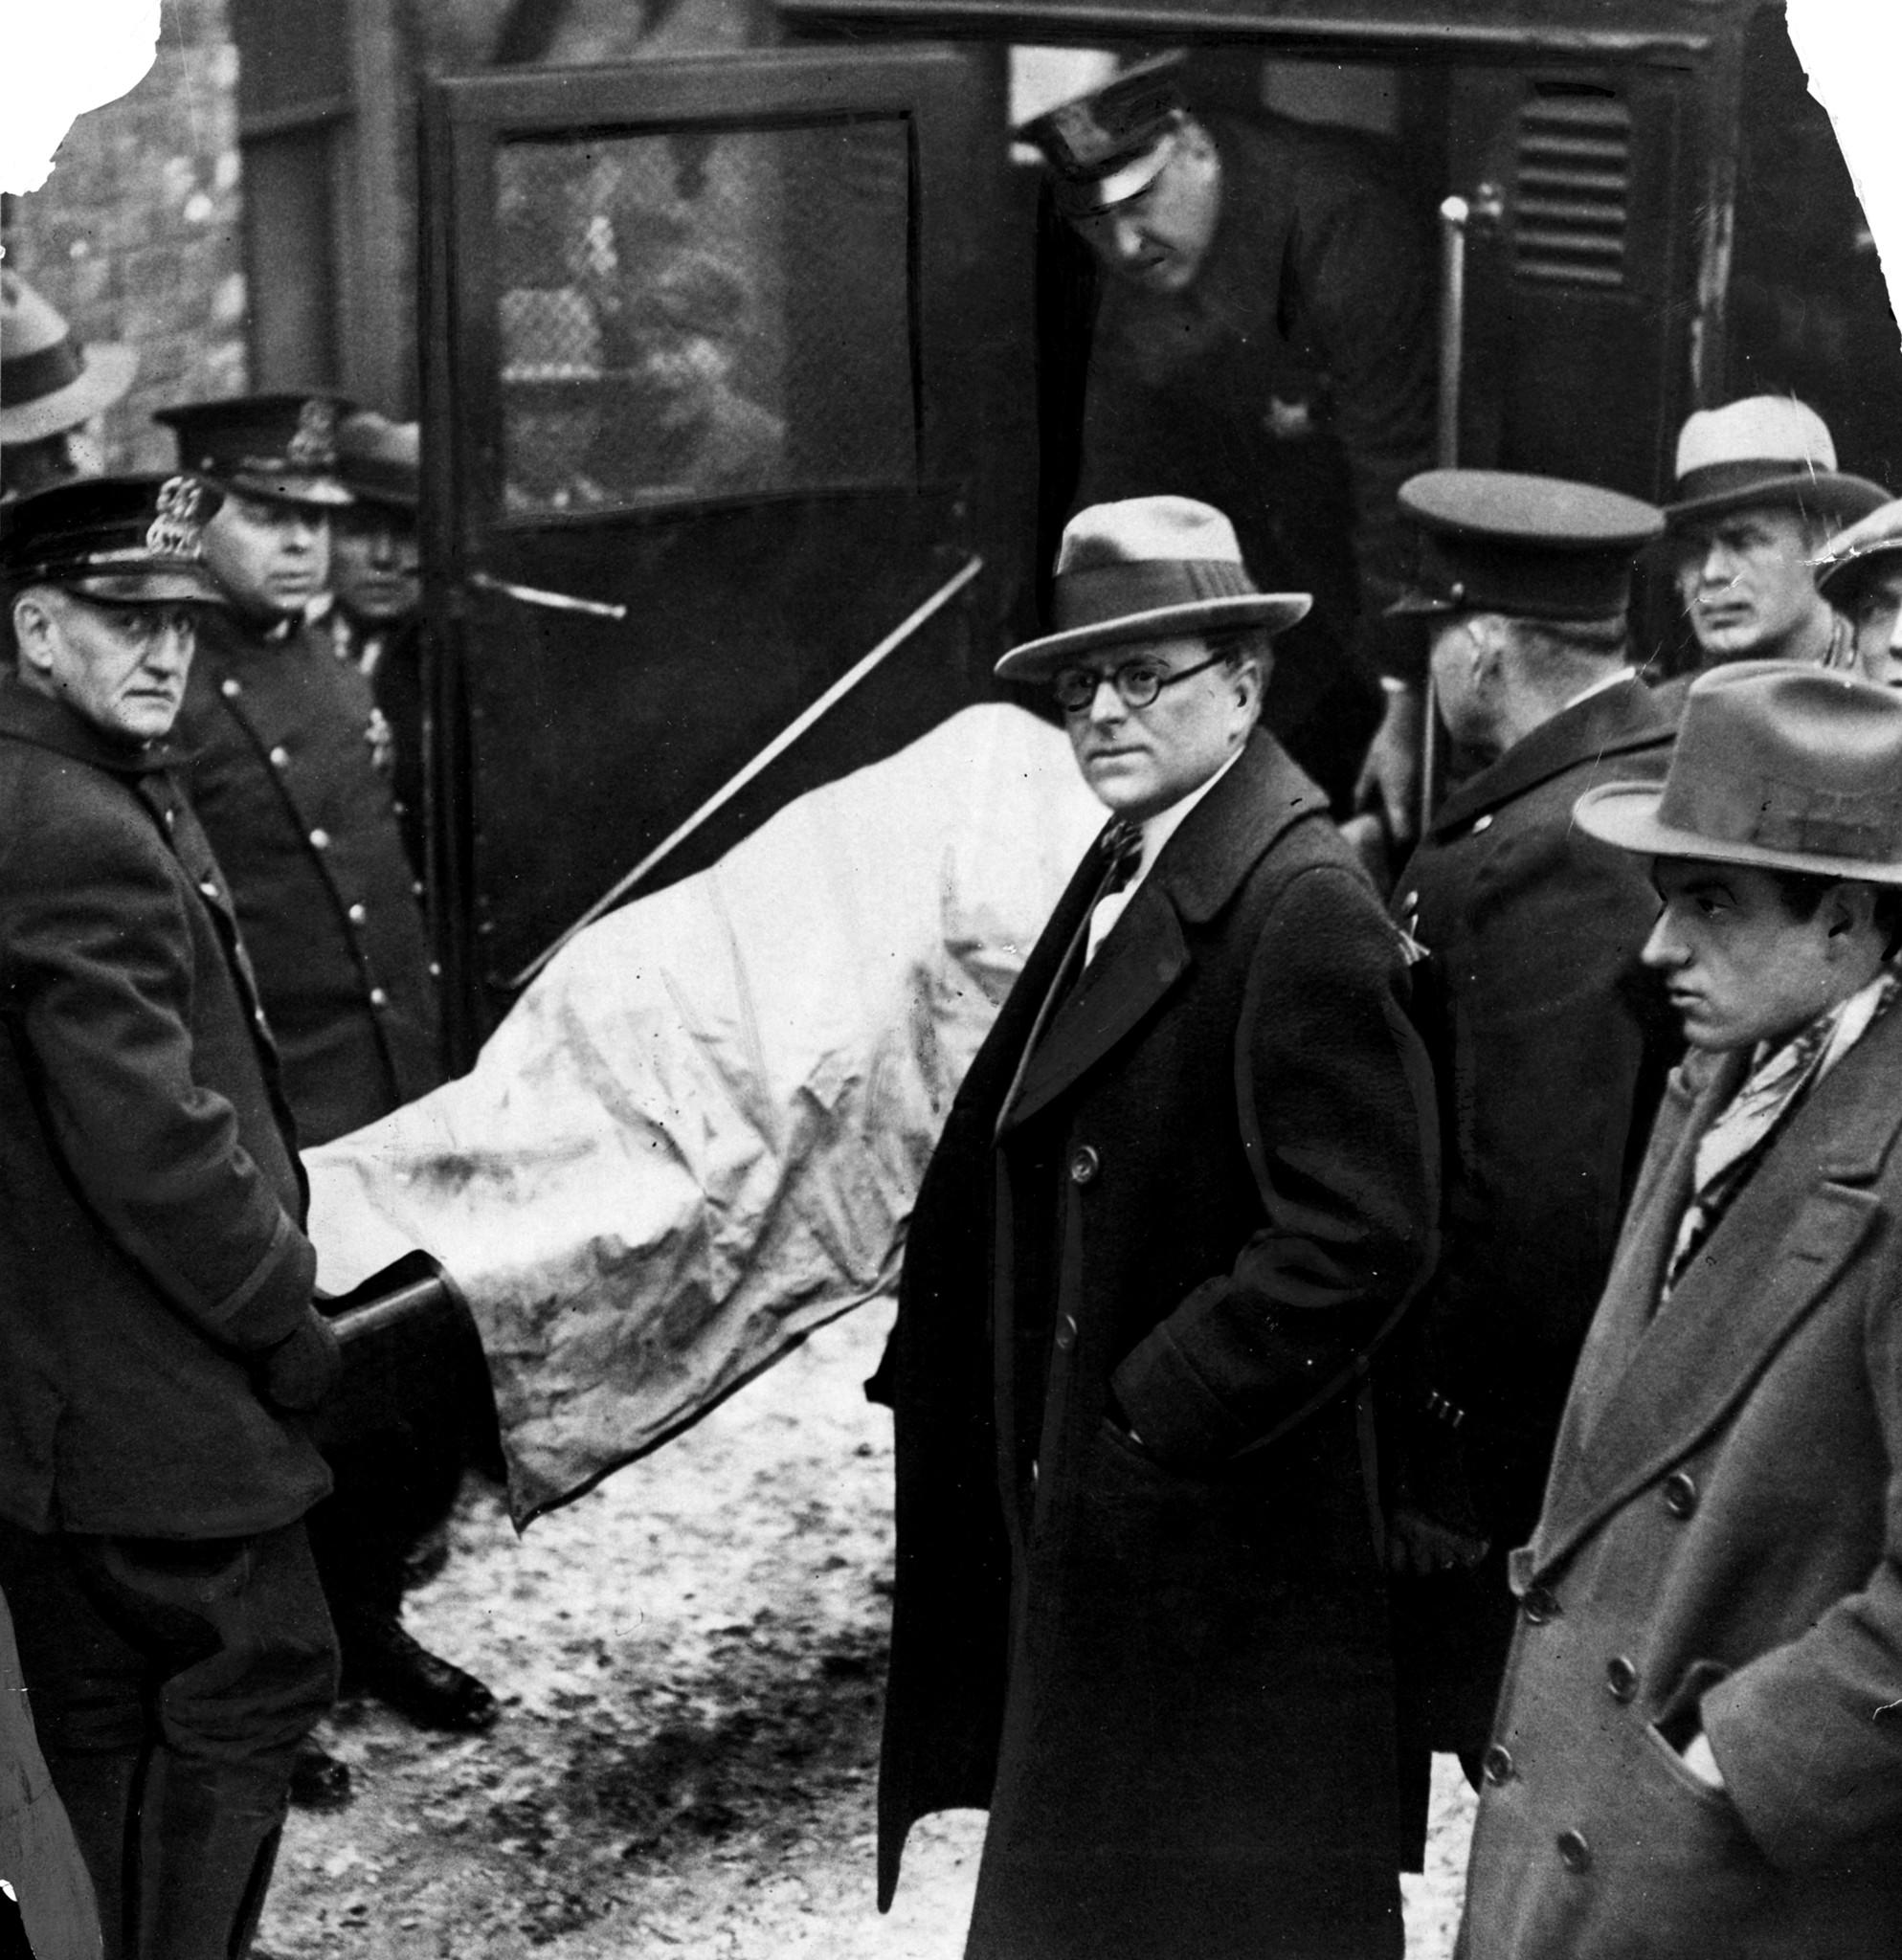 The body of one of the seven victims is placed in an ambulance with Coroner Herman M. Bundesen, center, in attendance at 2122 N. Clark Street on Feb. 14, 1929.